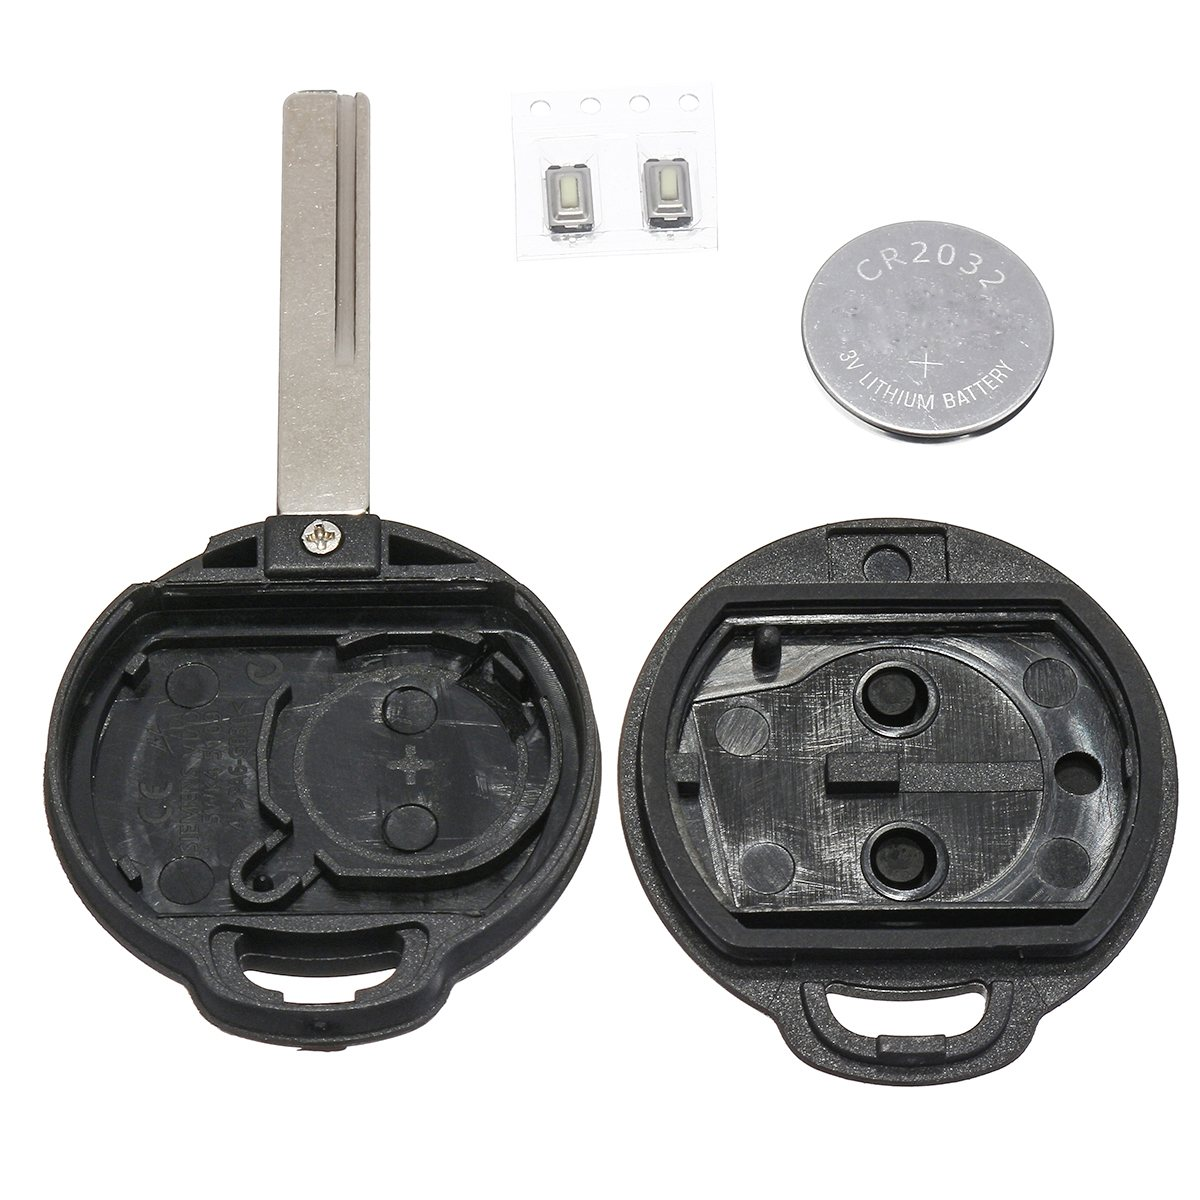 2 Buttons Car Remote Key Fob Case Shell Replacement Kit Cr2032 With